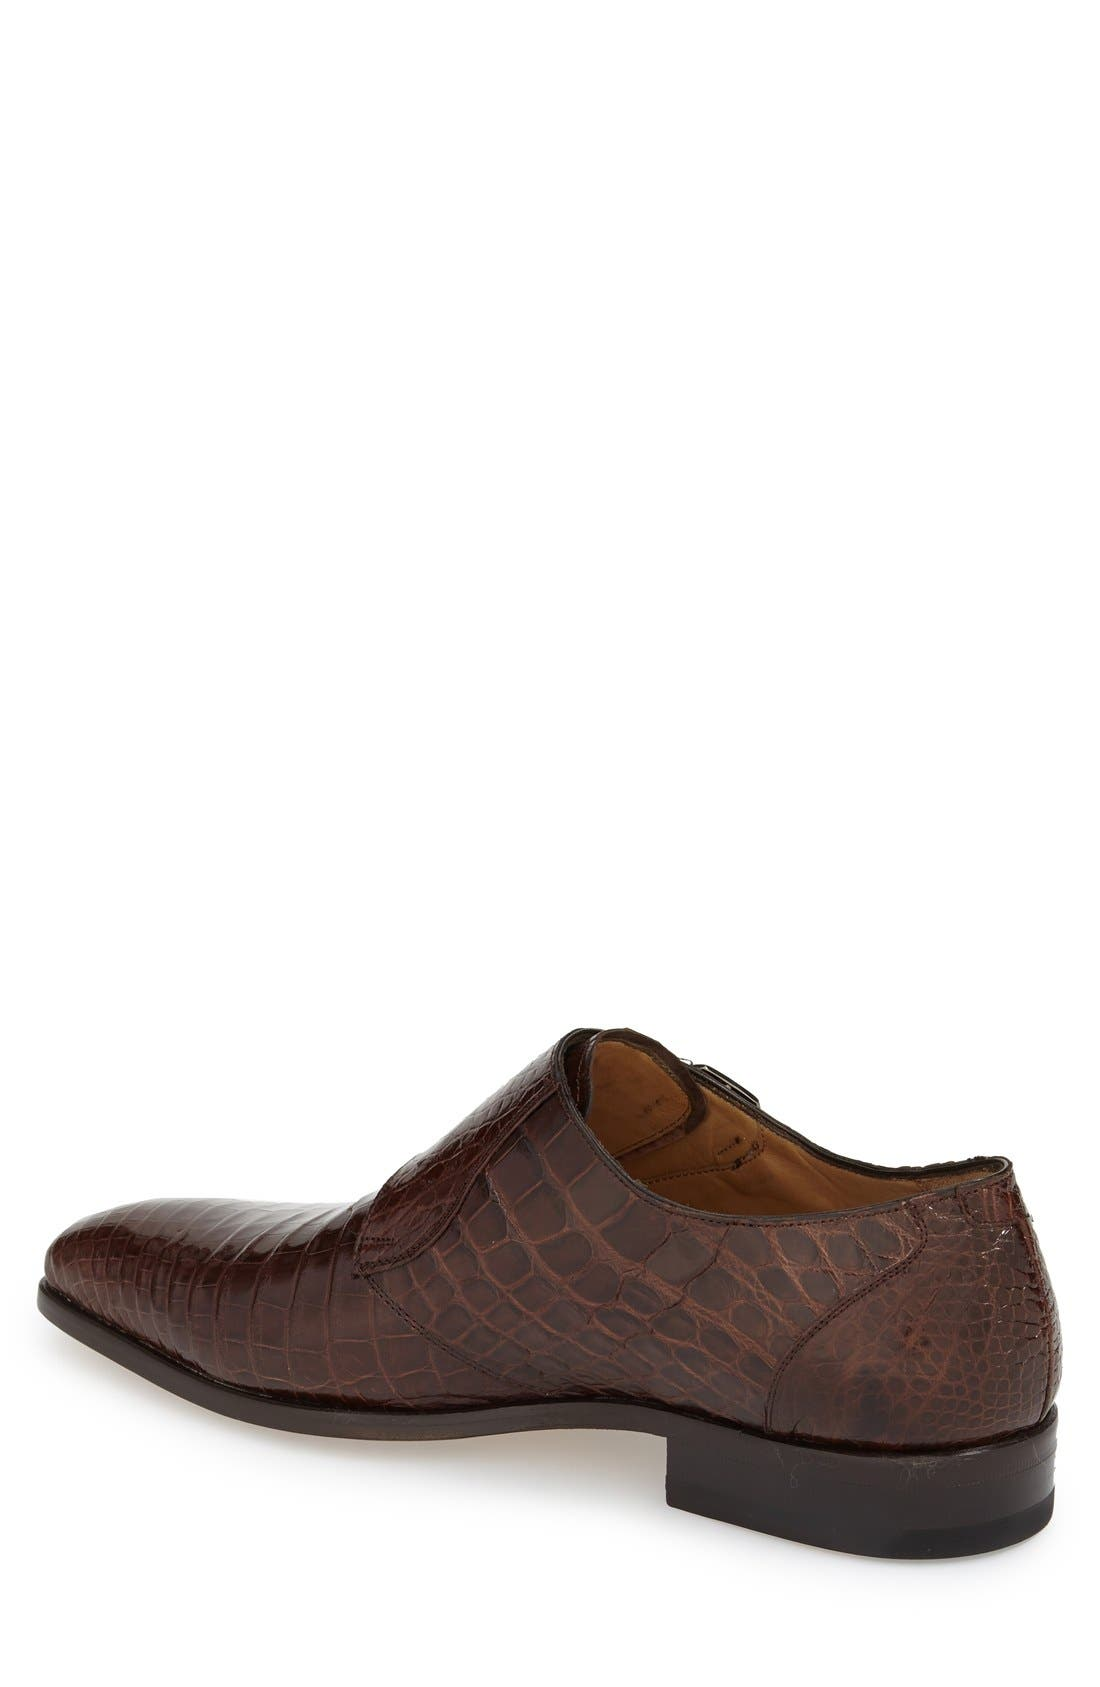 'Agra' Double Monk Strap Shoe,                             Alternate thumbnail 4, color,